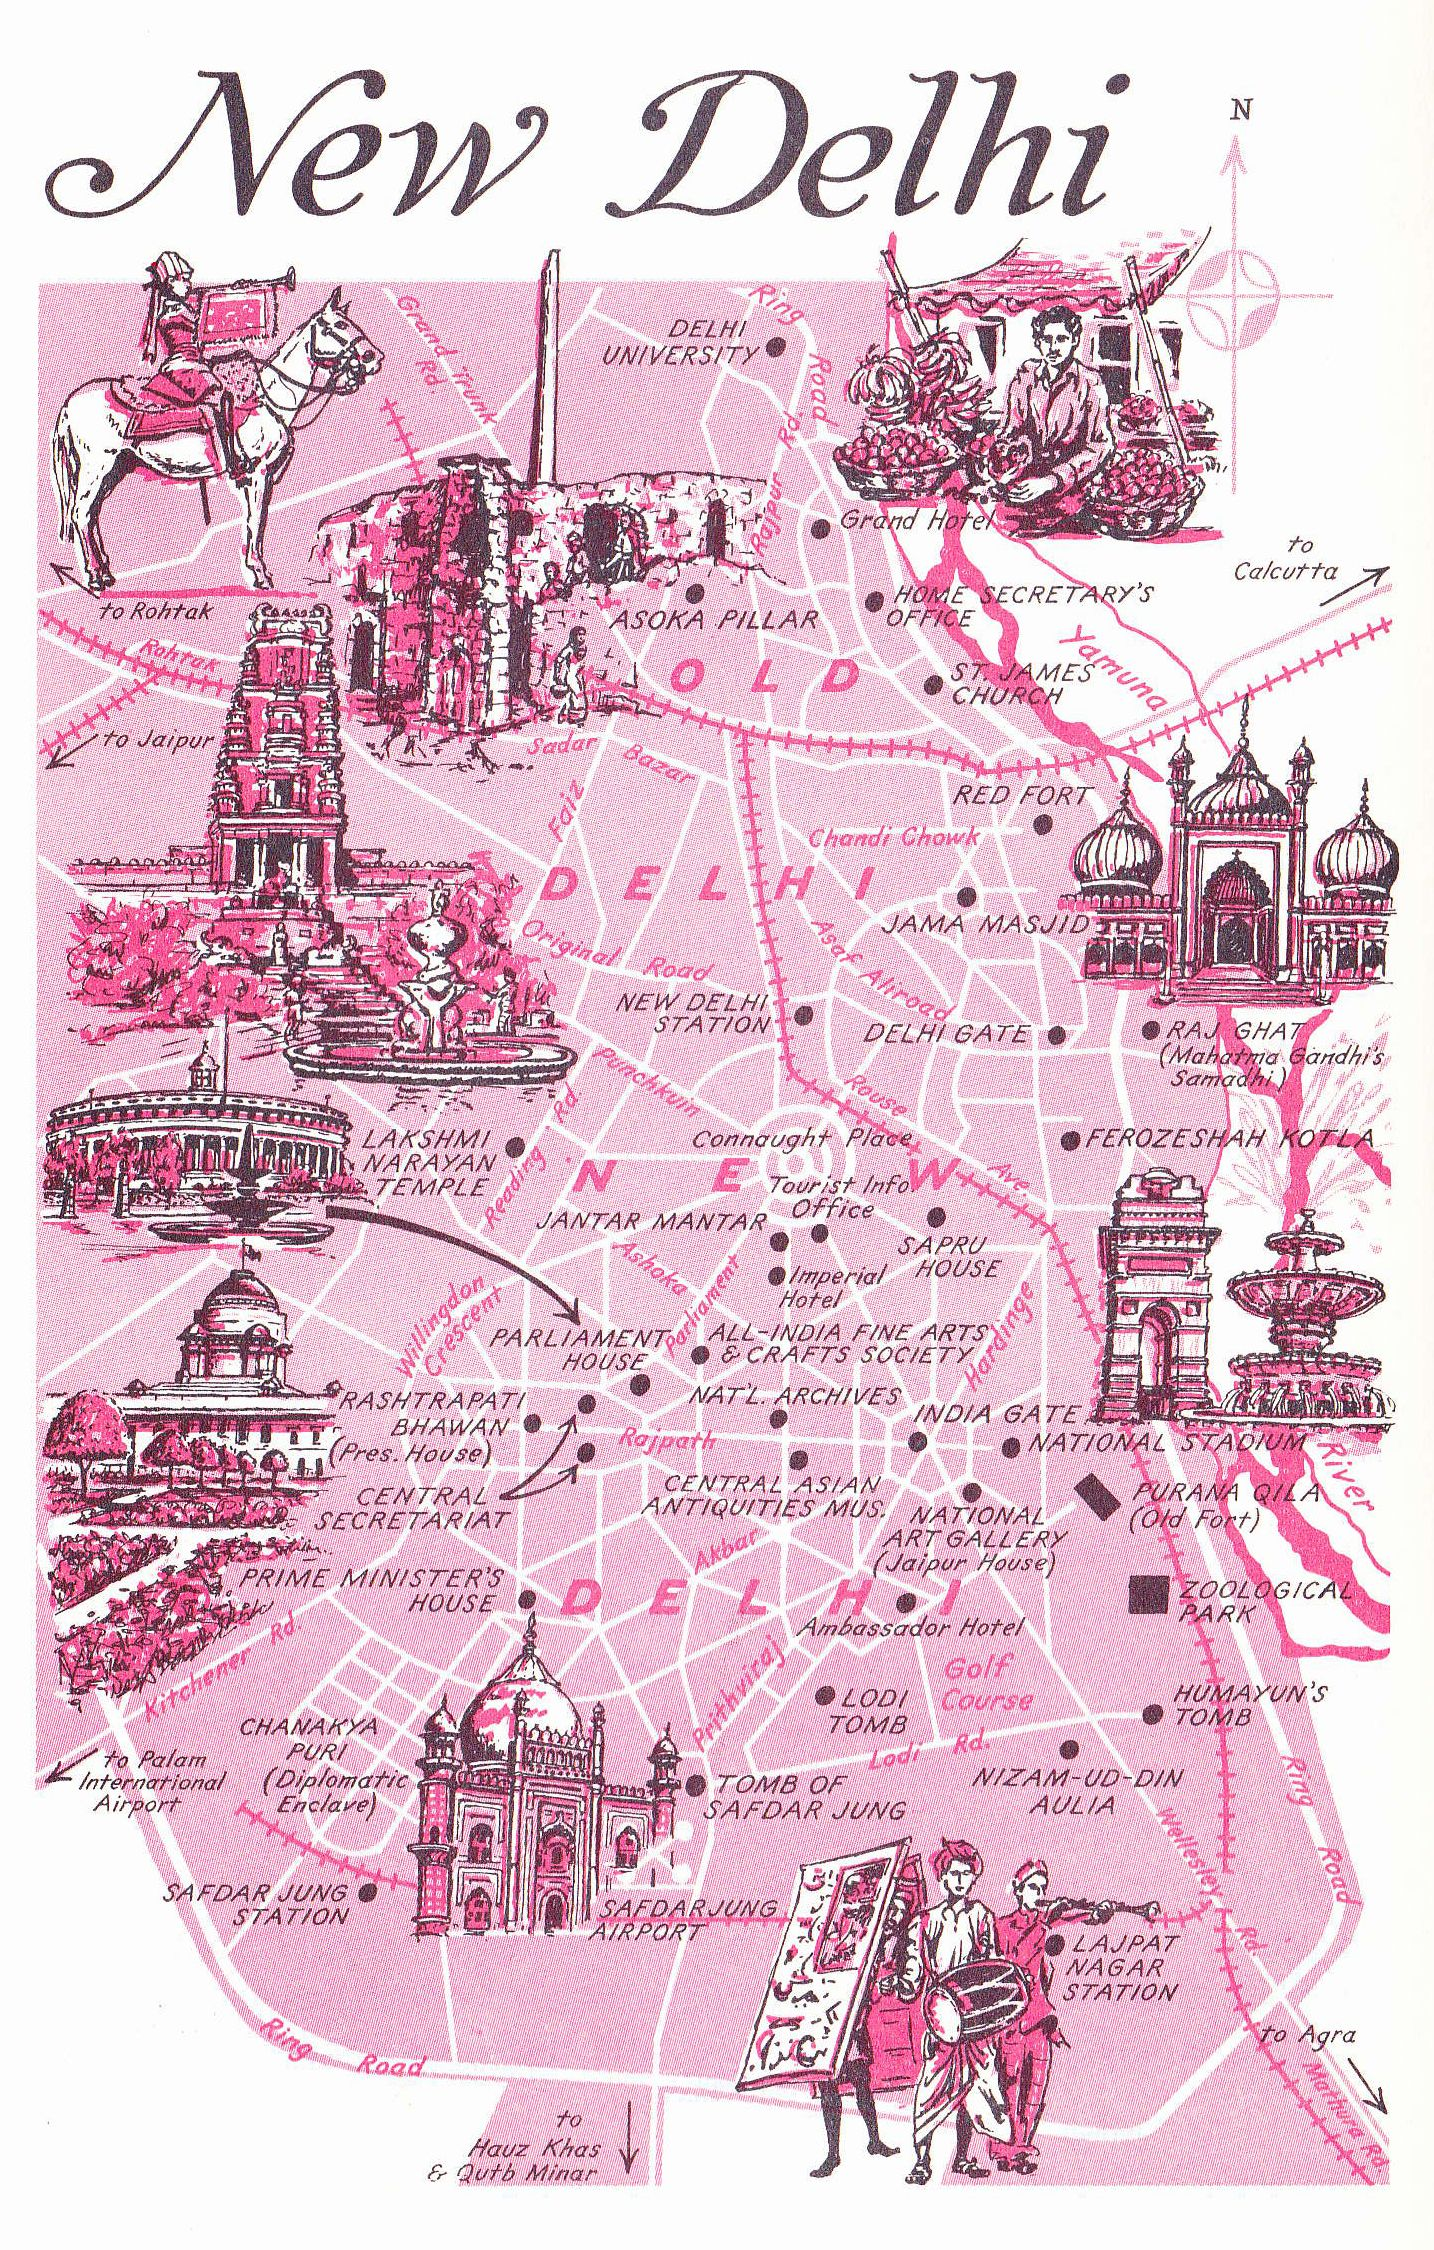 Old Map Of New Delhi India Wan Der Lust Won Der Luhst A Strong